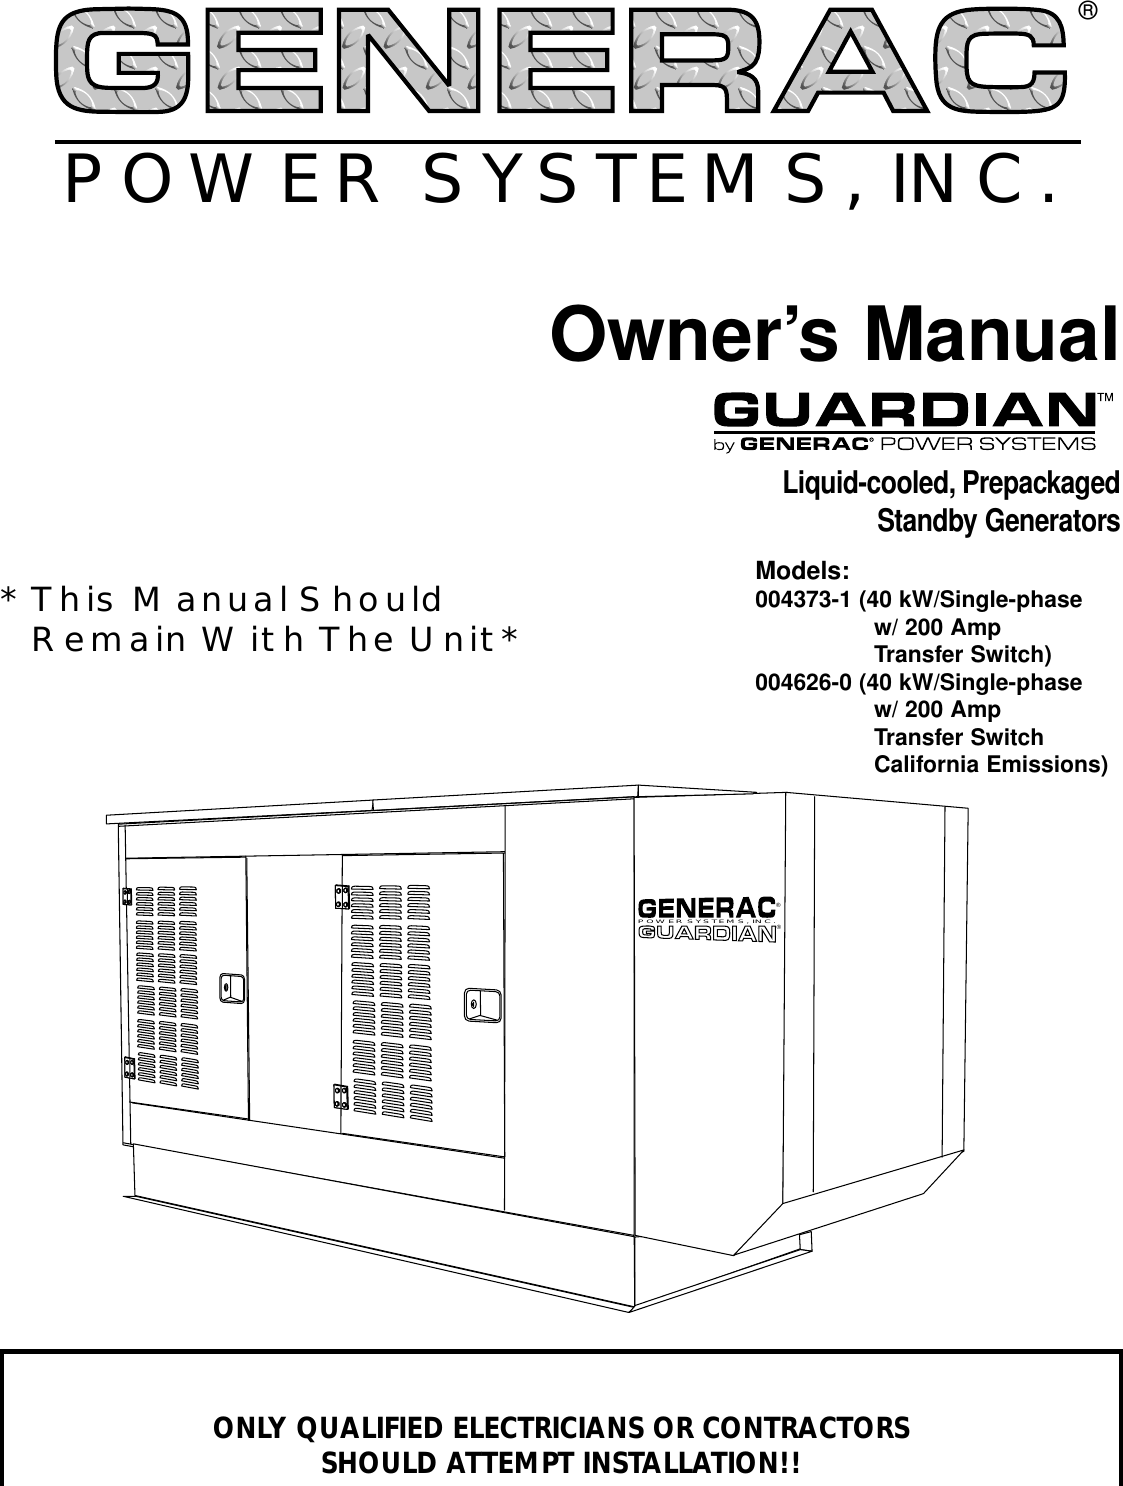 Generac 004373 1 004626 0 Owners Manual Guardian 40kw Liquid Cooled 200 Amp Transfer Switch Wiring Diagram Standby Generator D4963